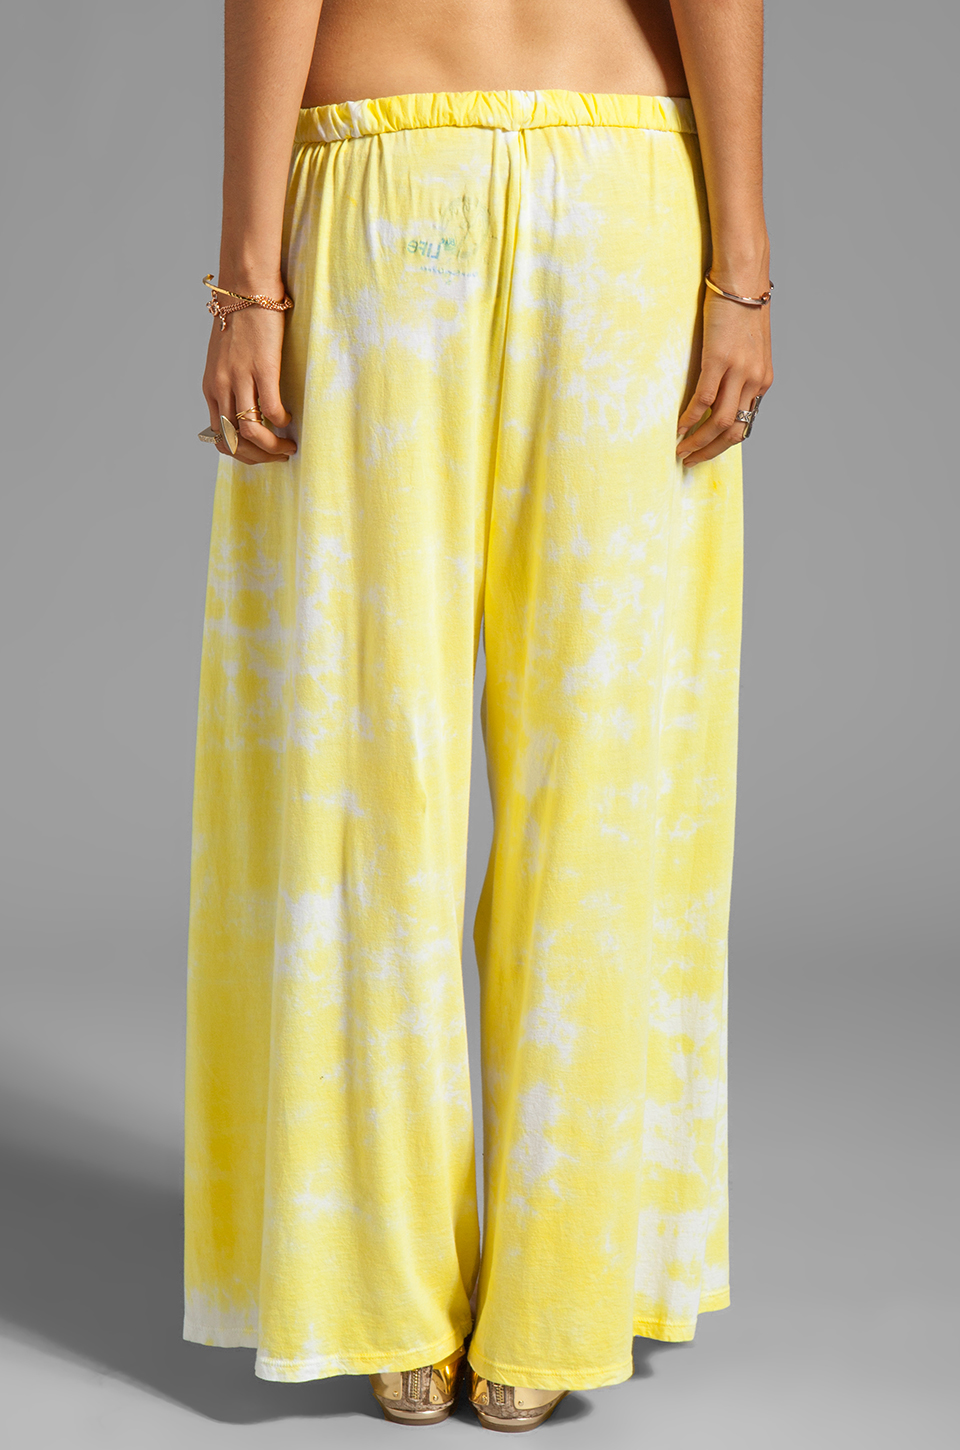 Blue Life Beach Trouser in Sunbeam